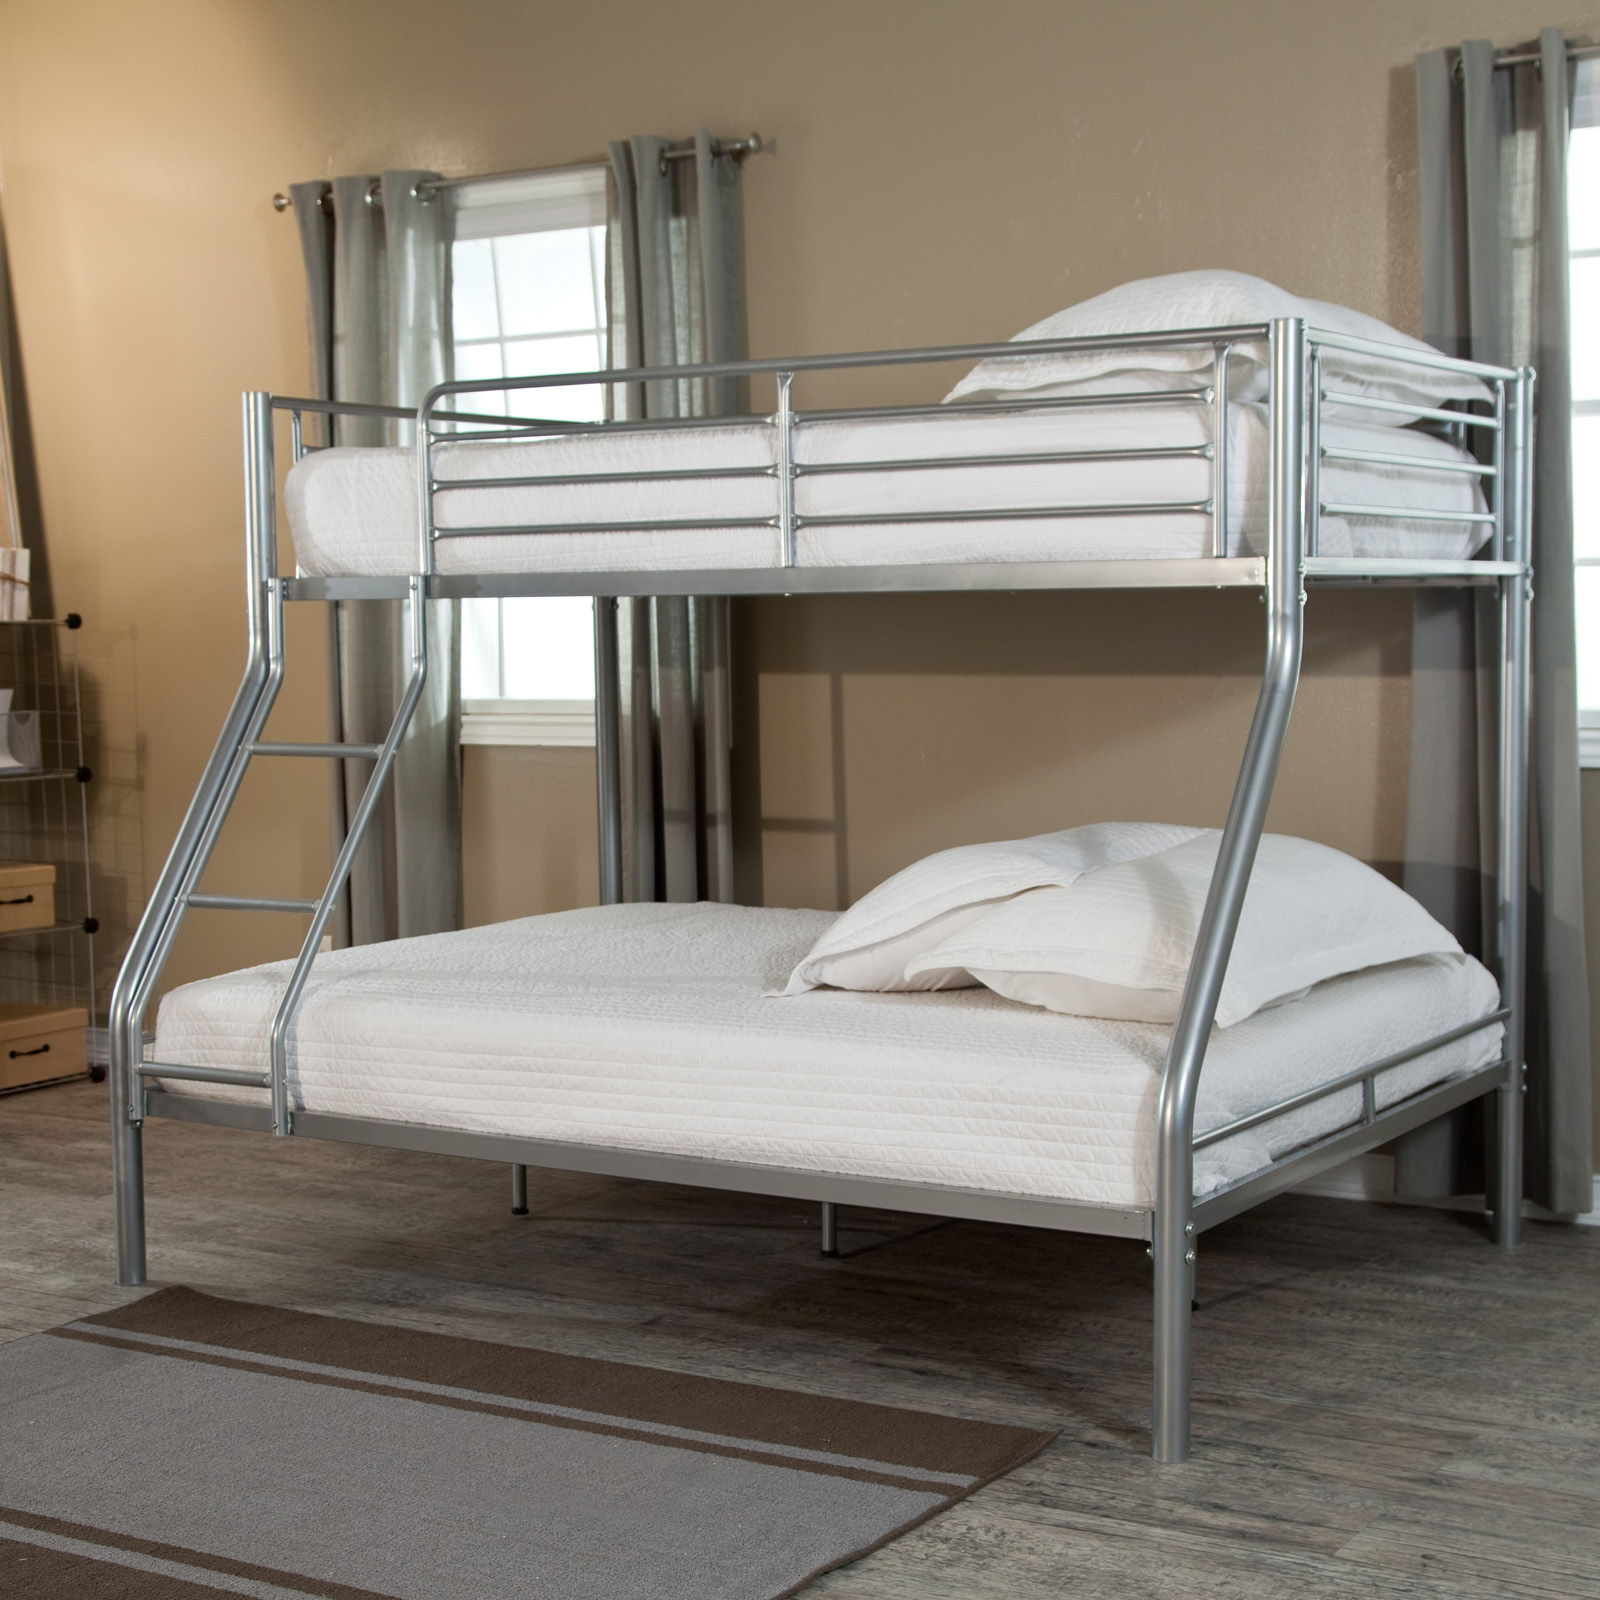 Duro Wesley Twin over Full Bunk Bed - Silver | Hayneedle